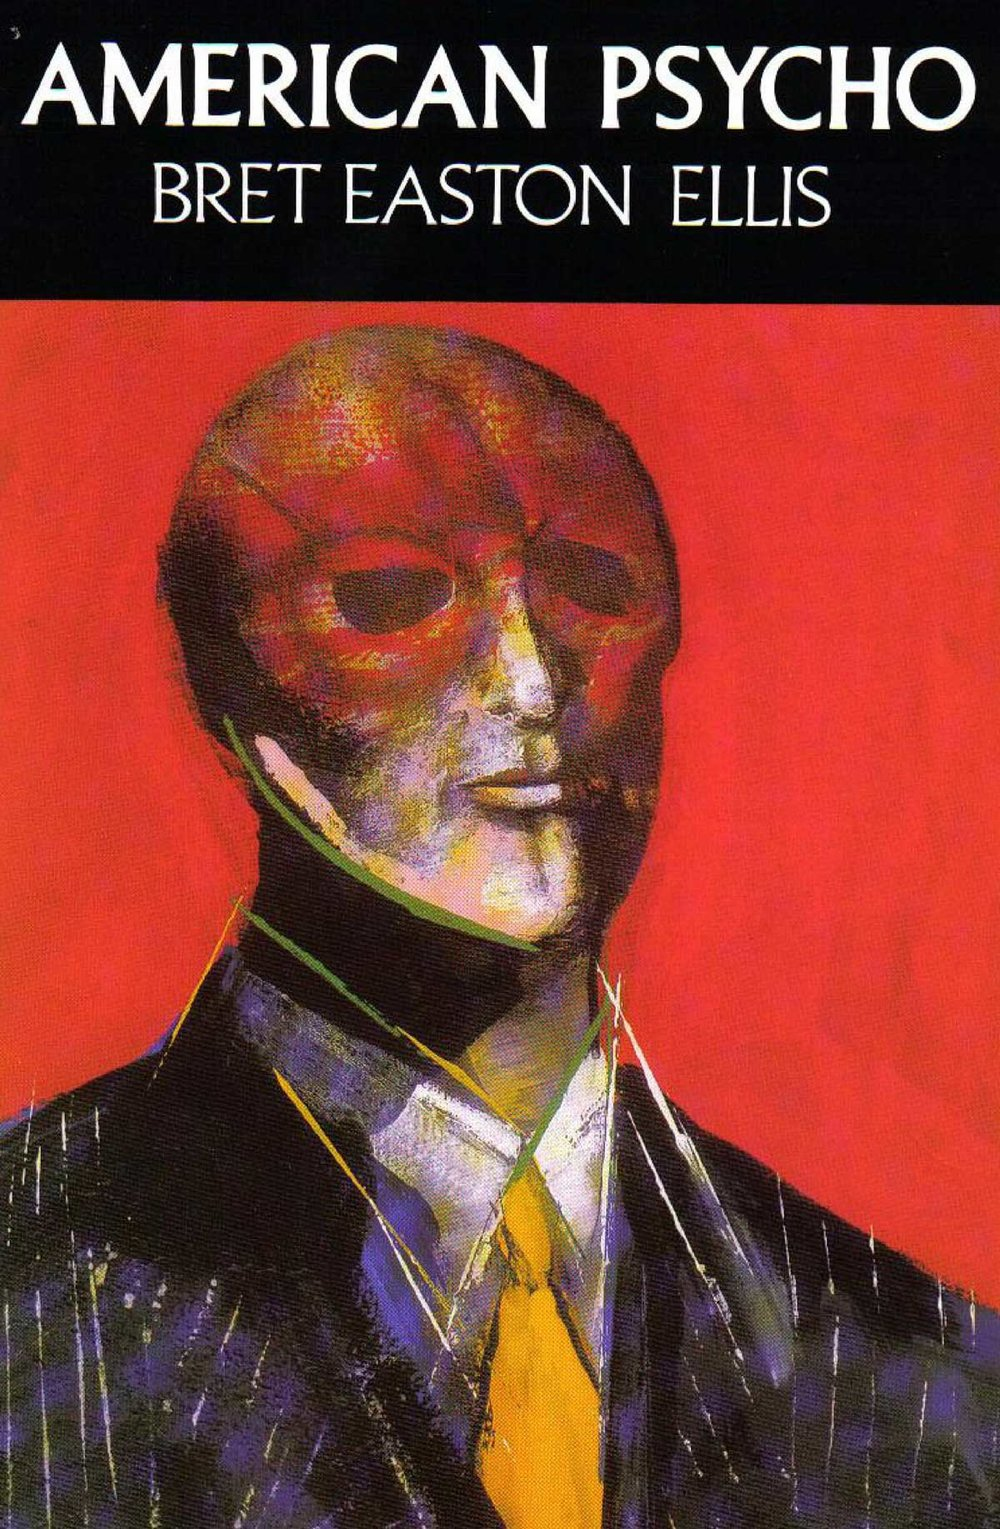 img - American Psycho by Bret Easton Ellis (1991)